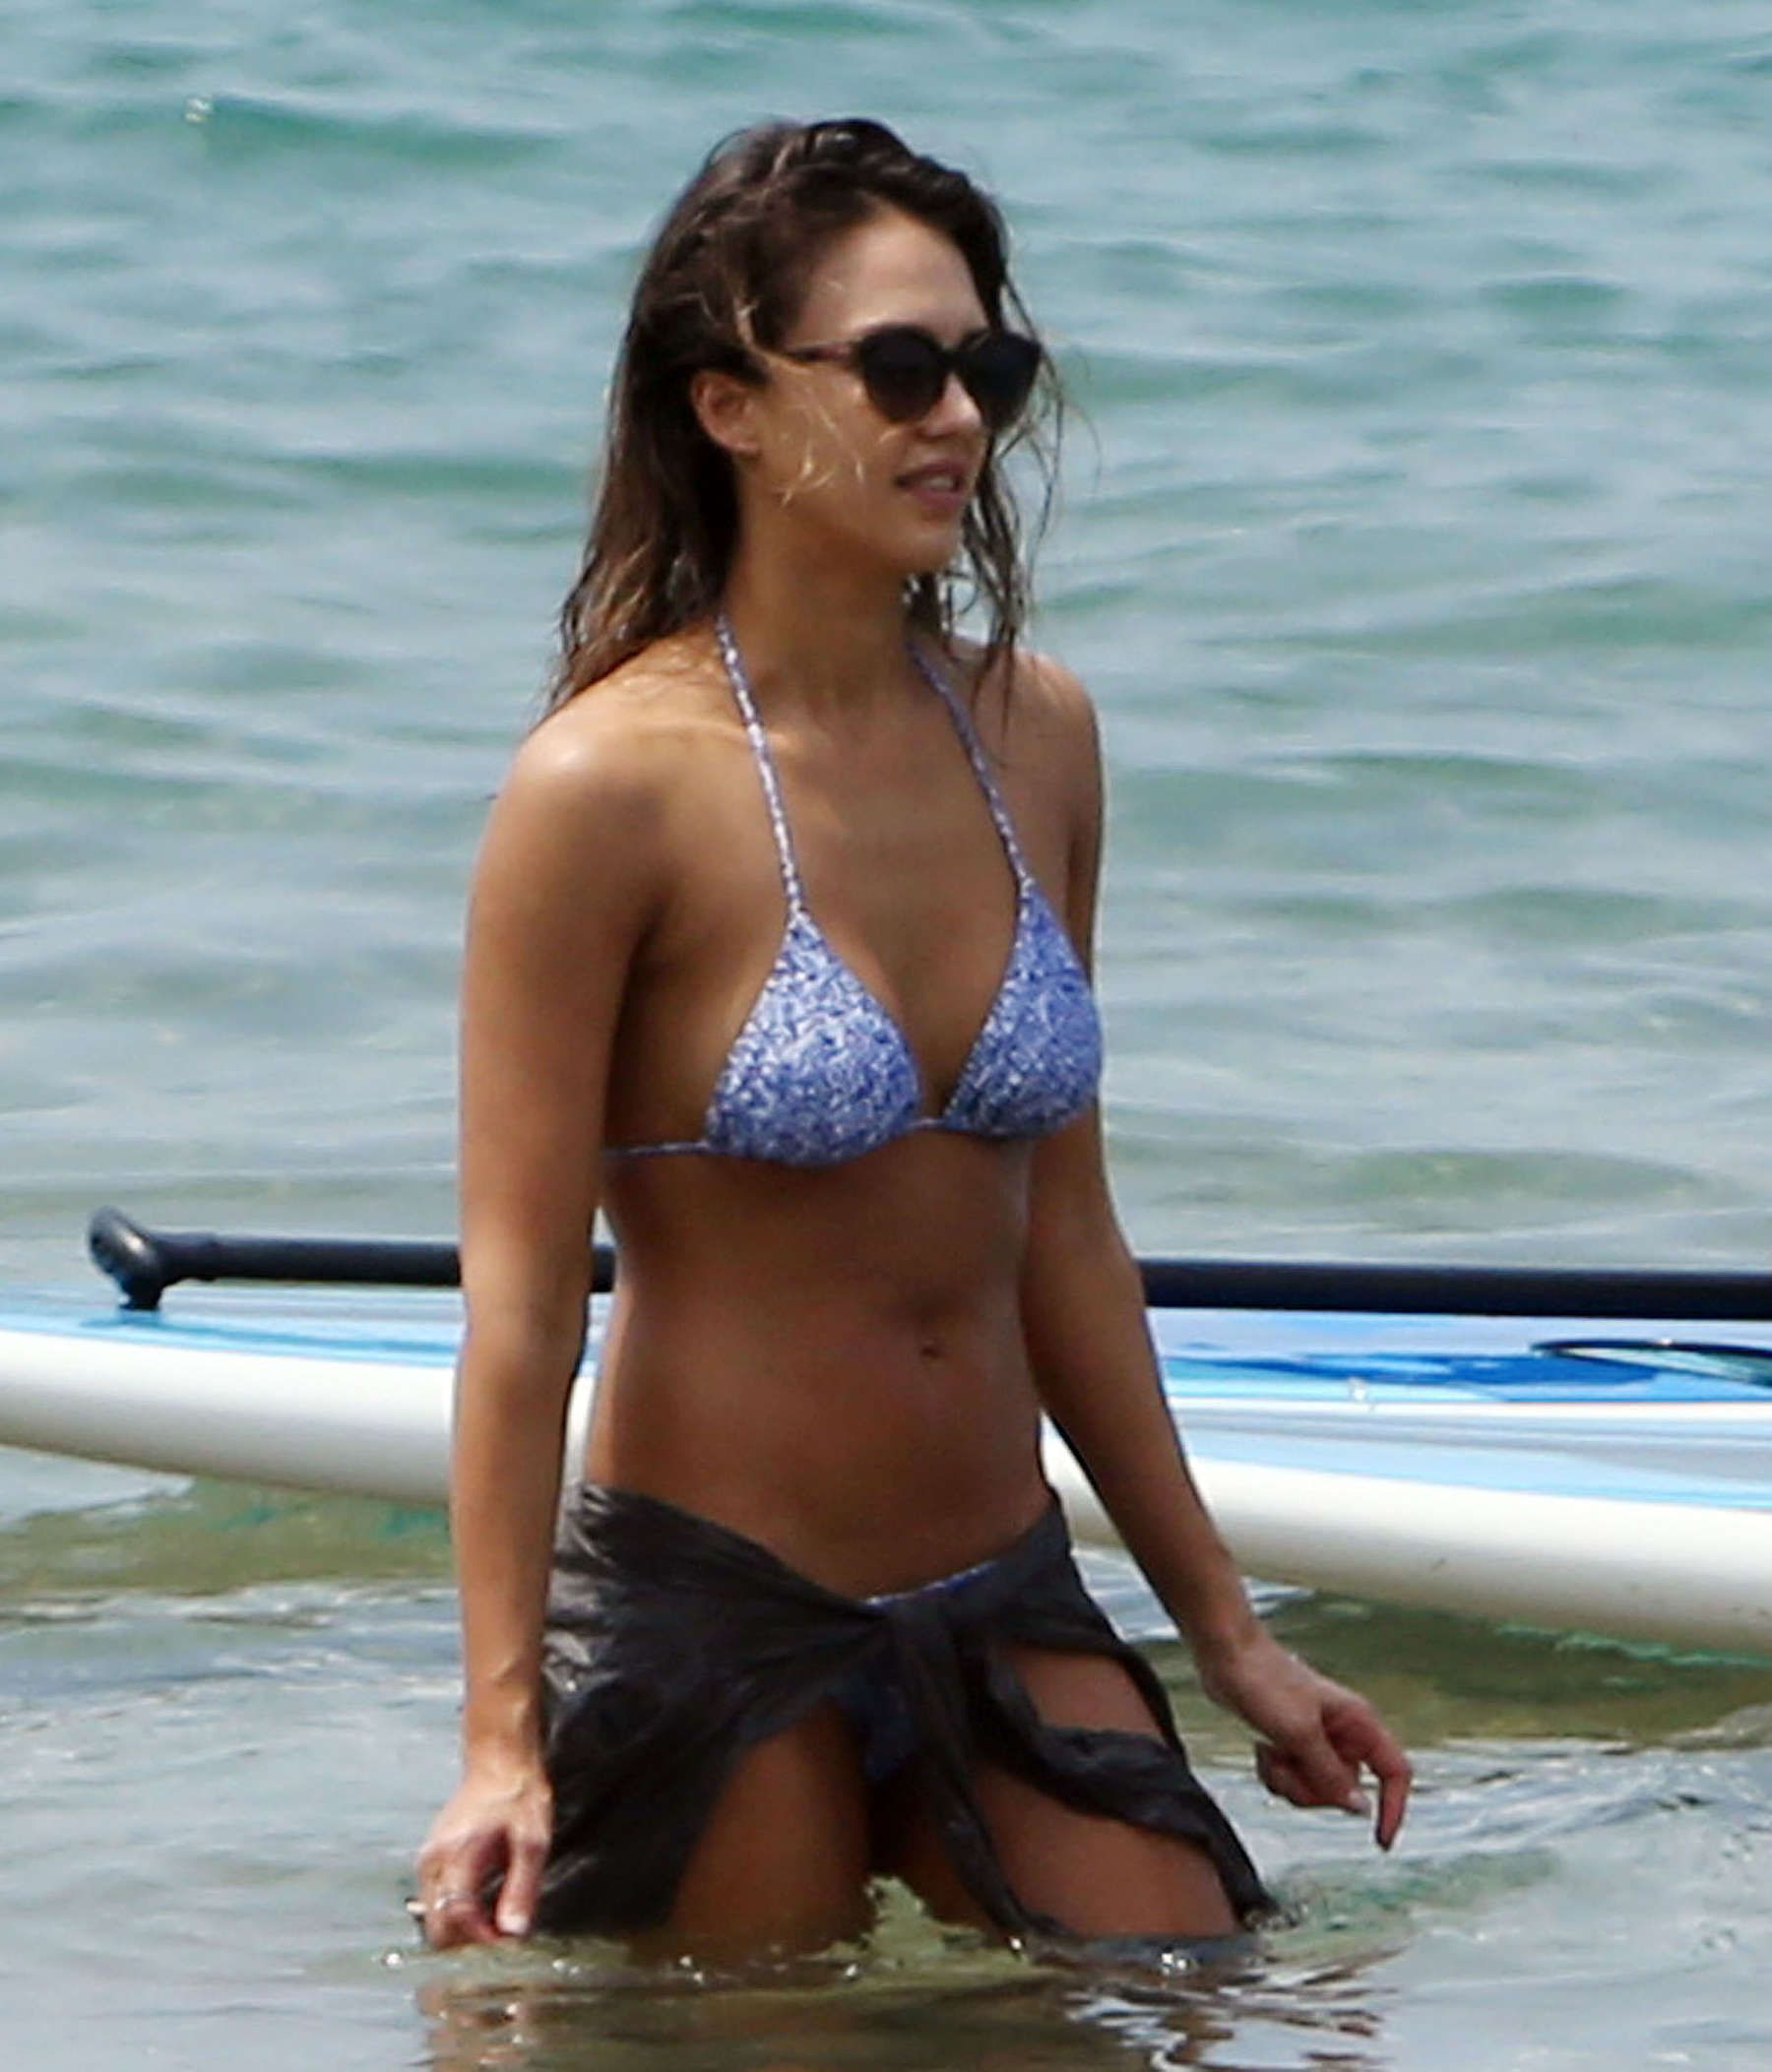 Jessica Alba, Female Bodies, Celebrities, Bikinis, Celebs, Bikini, Bikini  Swimsuit